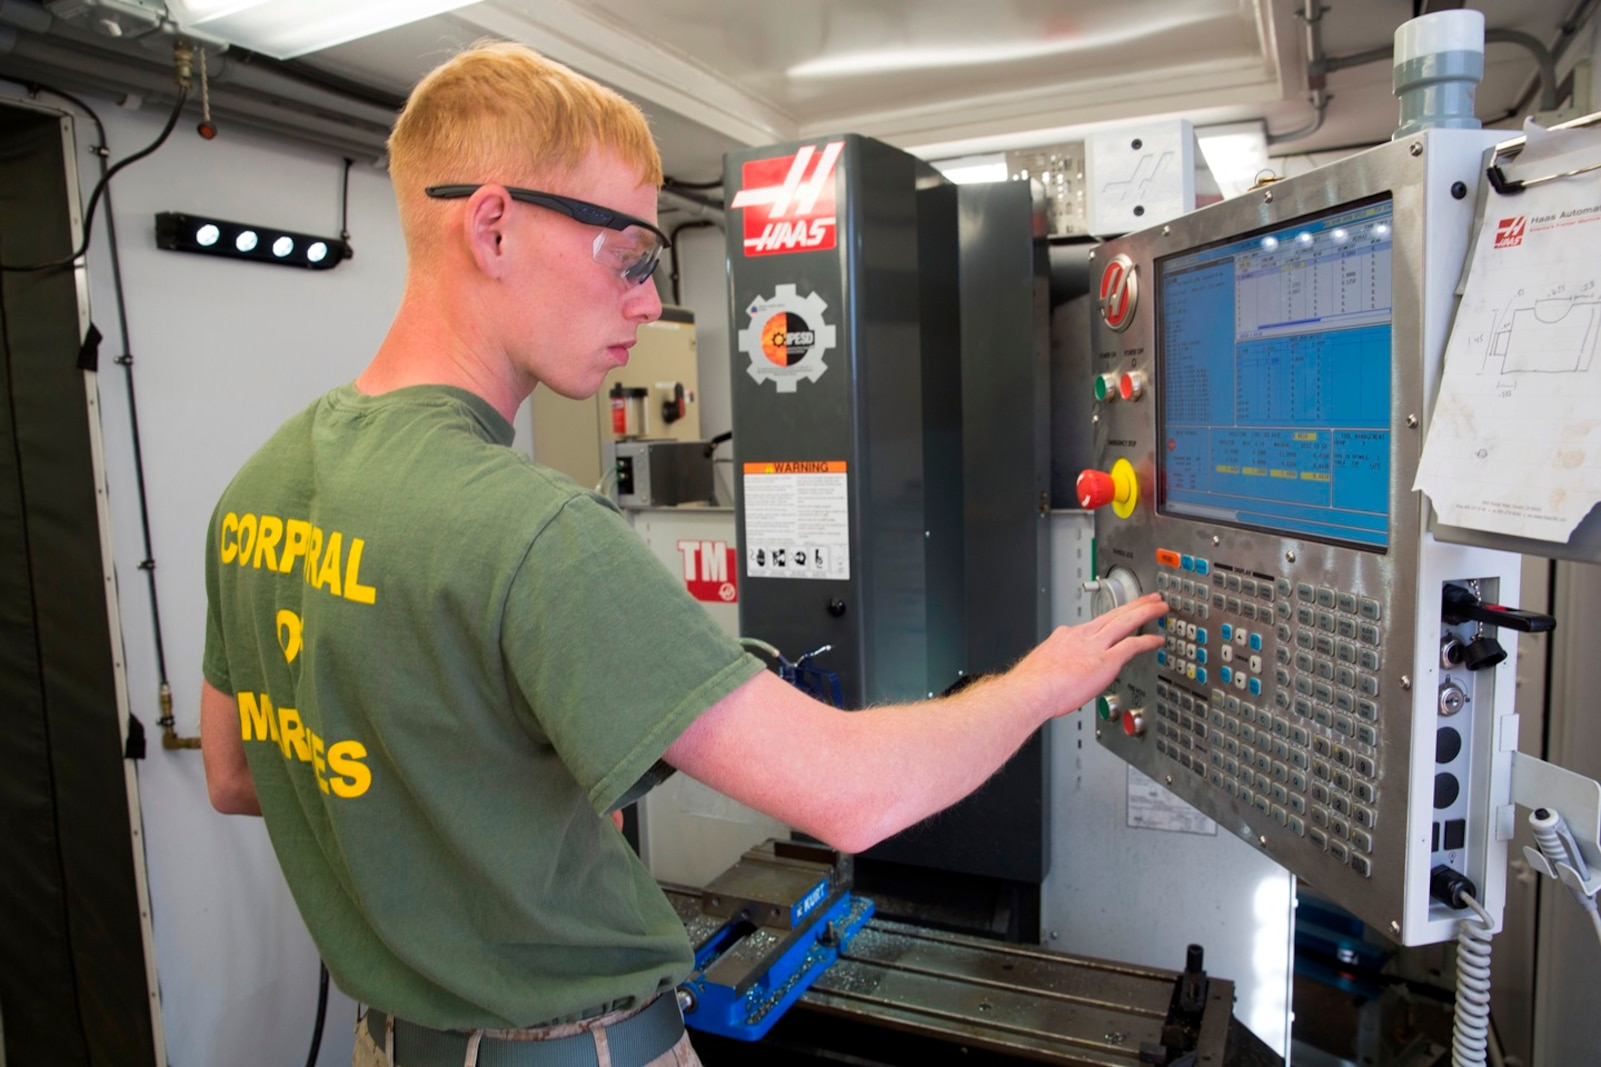 U.S. Marine Cpl. Rusty Mongold, a machinist with Engineer Maintenance Company, 1st Maintenance Battalion, 1st Marine Logistics Group, cuts a piece of metal using the Computer Numerical Control during exercise Steel Knight at Marine Corps Air Ground Combat Center Twentynine Palms, Calif., Dec. 8, 2016. Steel Knight 2017 is a 1st Marine Division-led exercise that exposes Marines and Sailors to skill sets necessary to operate as a fully capable Marine air ground task force. Mongold is from Port Arthur, Texas. (U.S. Marine Corps photo by Sgt. Abbey Perria)